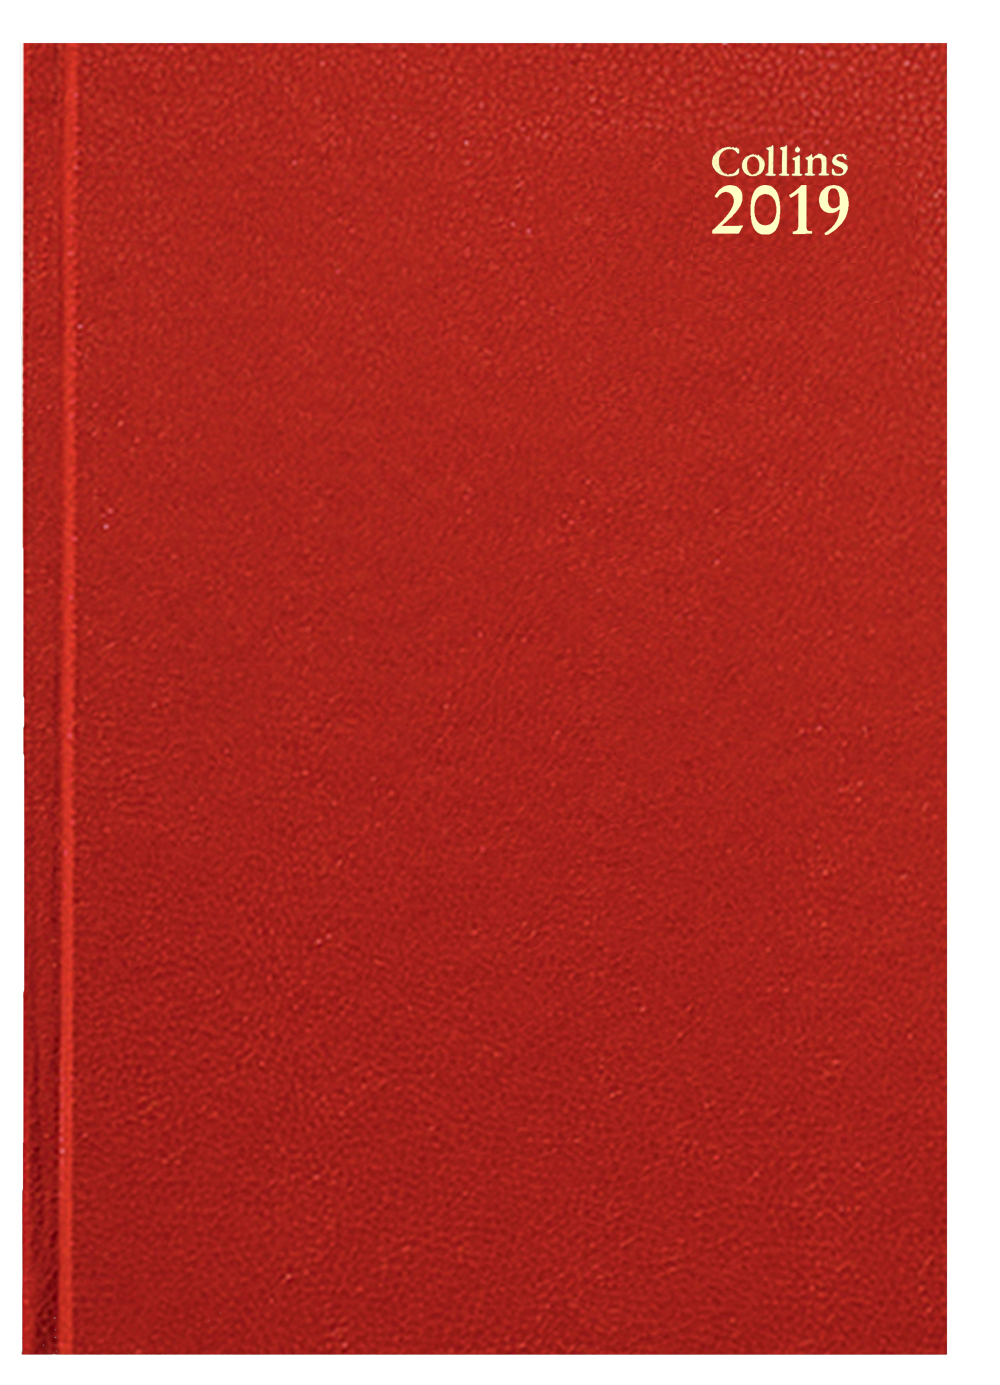 Collins A4 Desk Diary Week to View 2019 Red